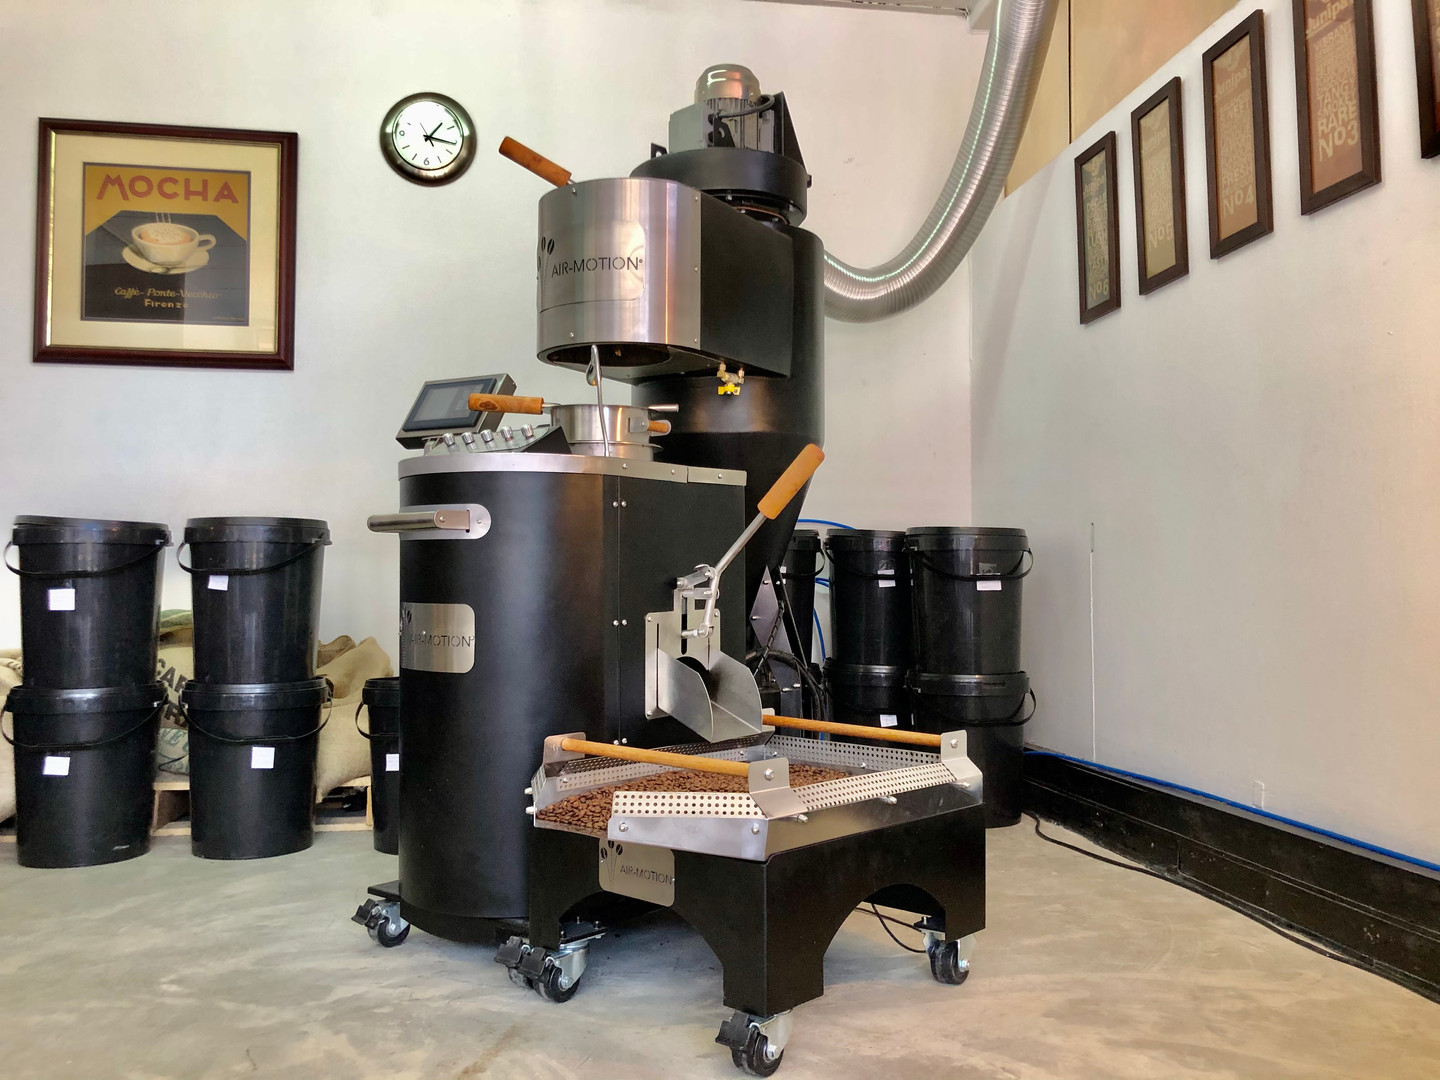 3kg Air-Motion Coffee Roaster